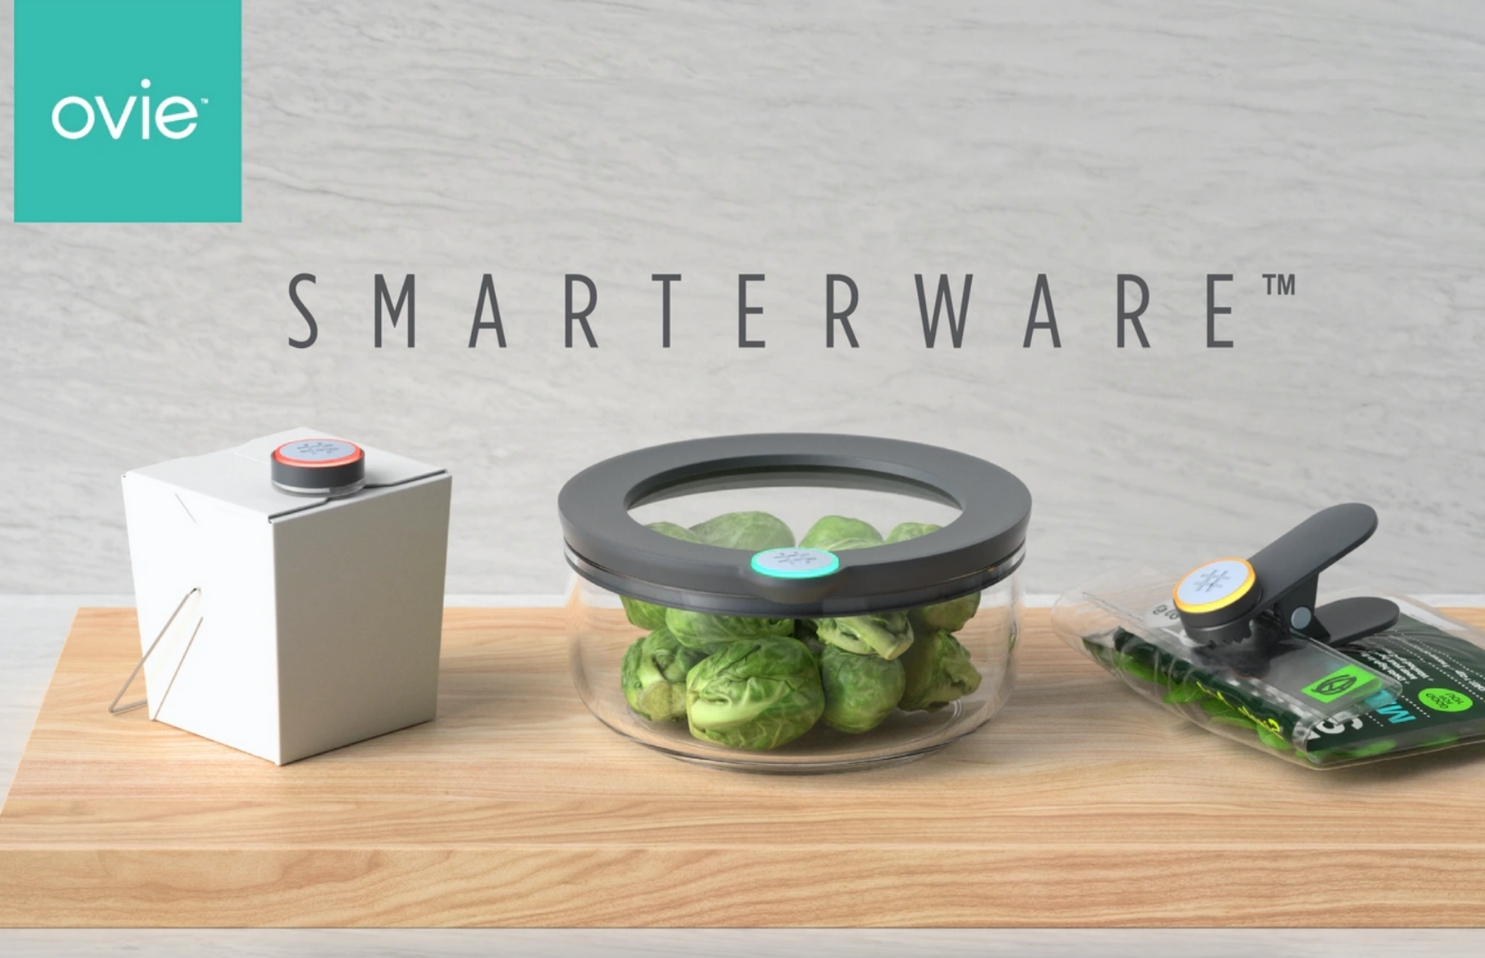 Ovie™ launches Smarterware™